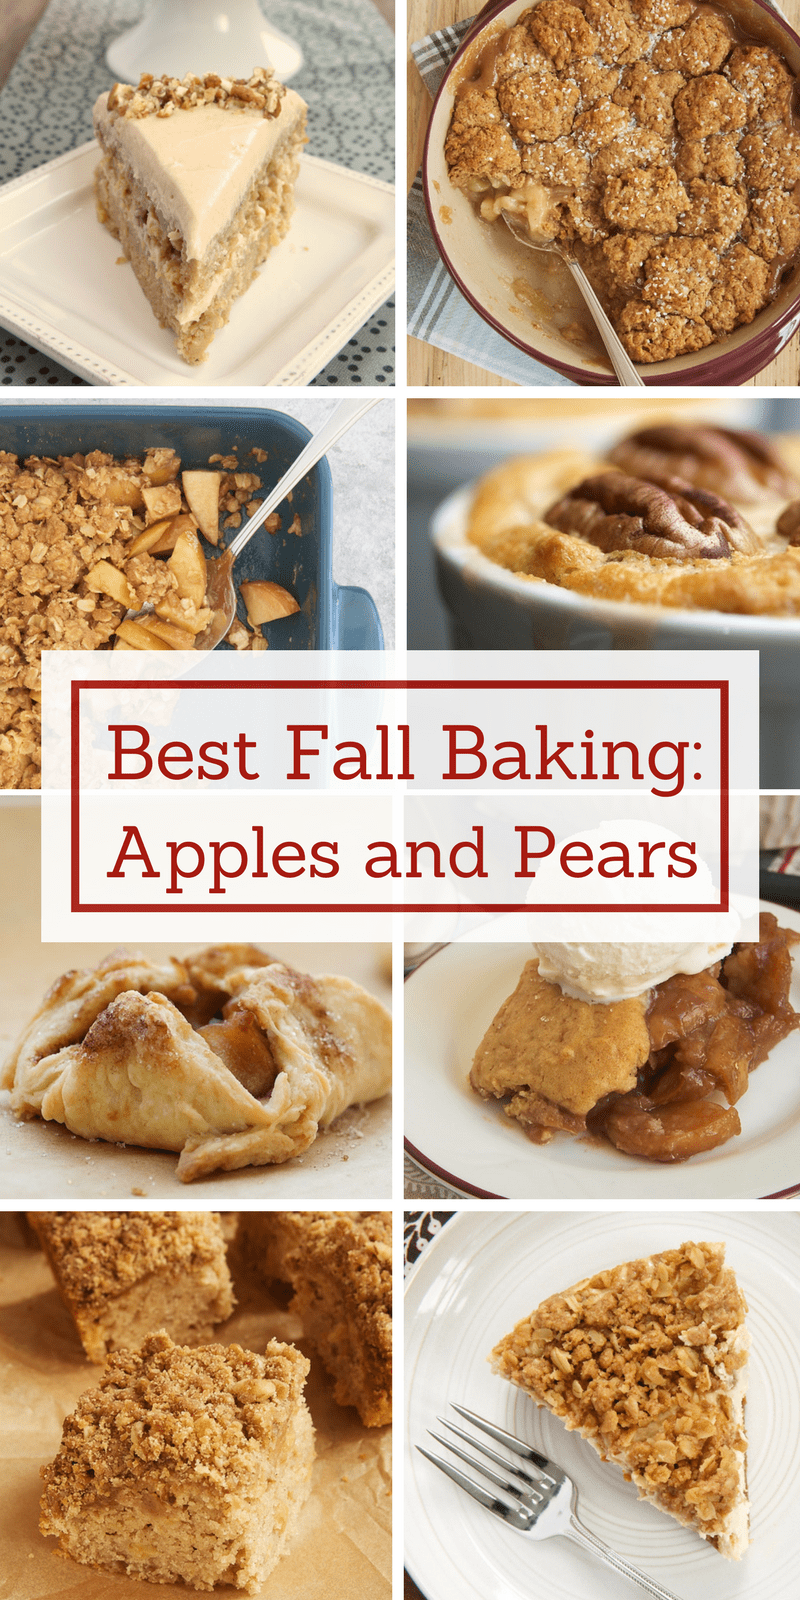 Apple and pear desserts are what fall baking is all about! Come find the best and most popular apple and pear recipes from Bake or Break in this essential fall baking collection.